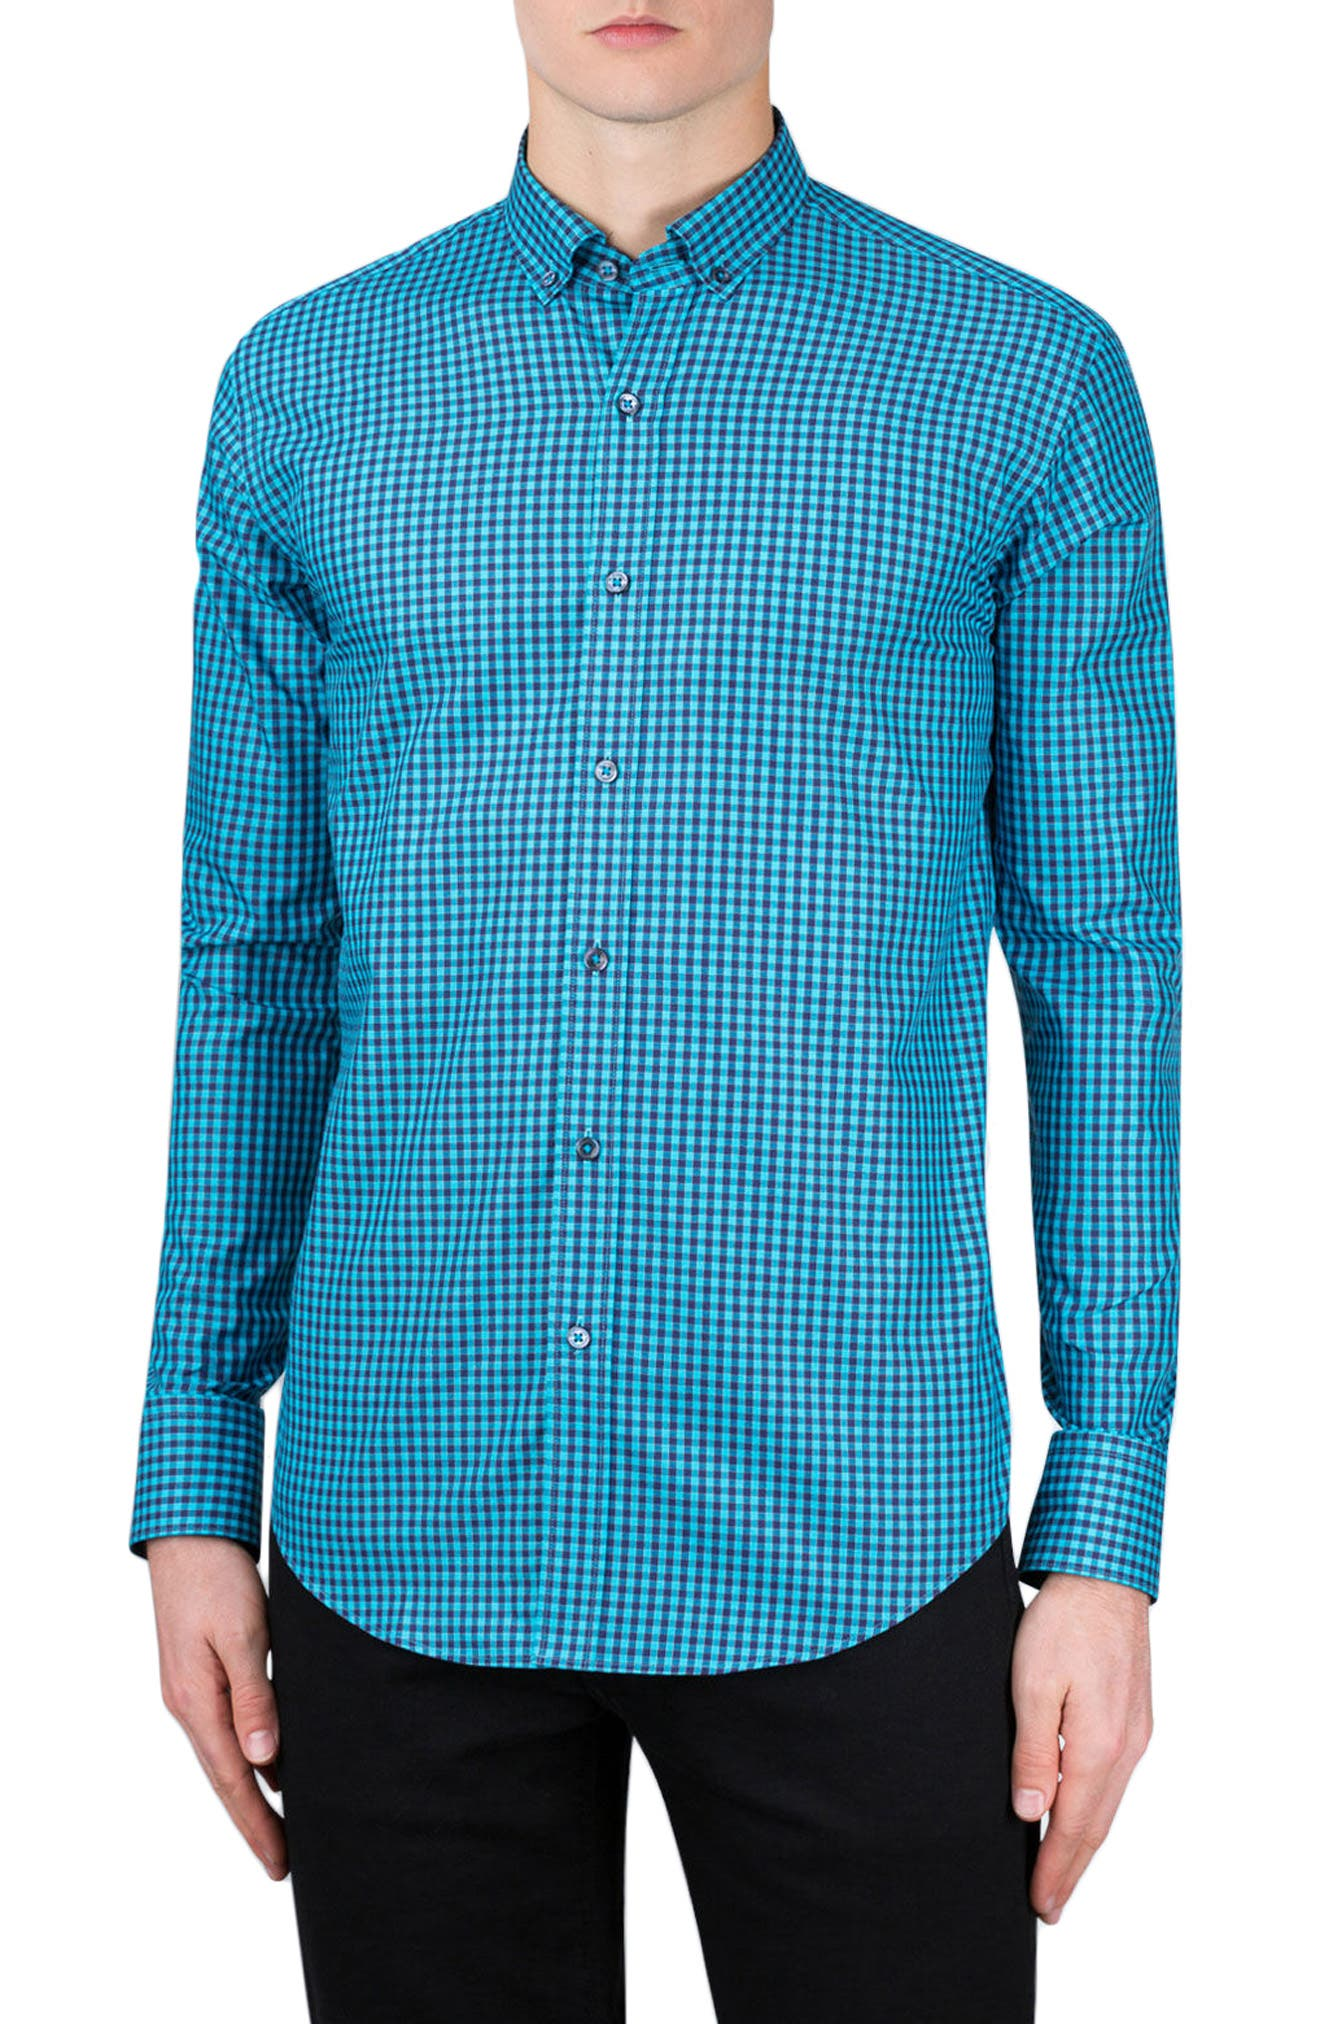 Shaped Fit Gingham Sport Shirt,                             Main thumbnail 1, color,                             445